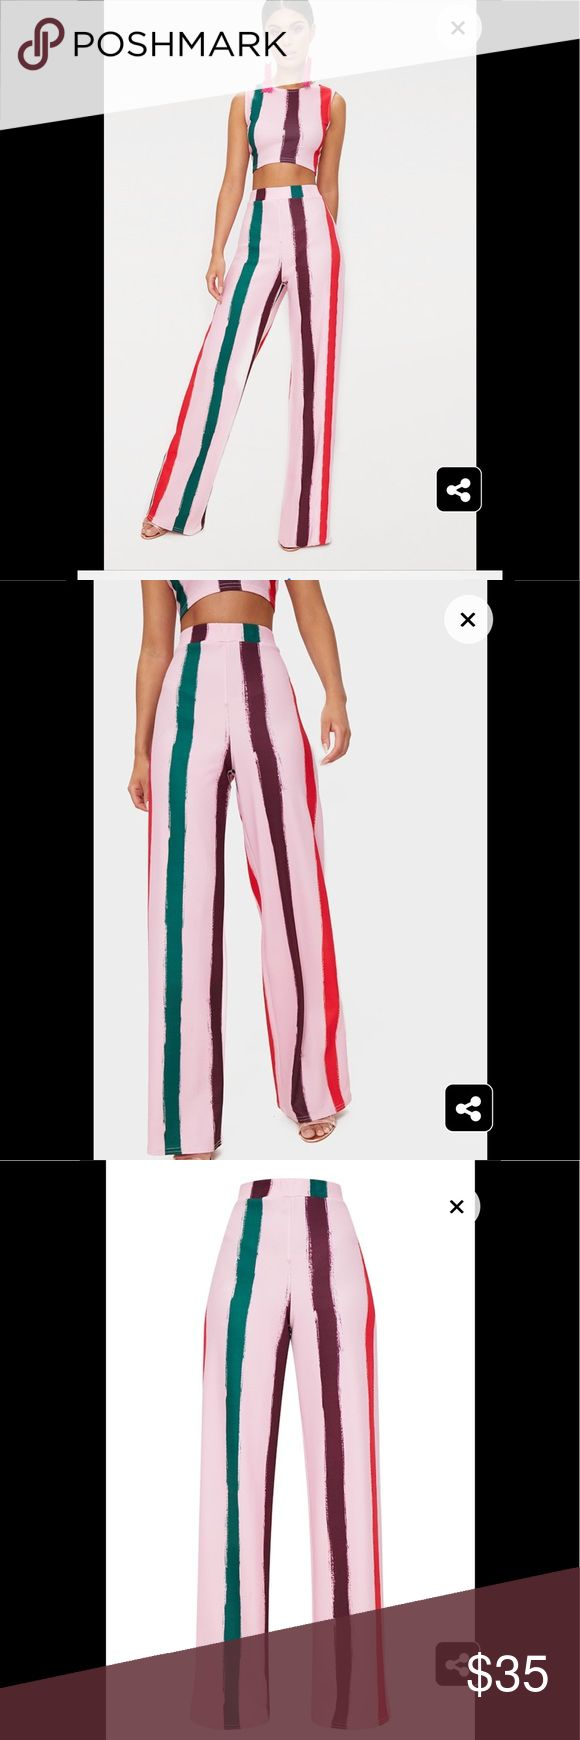 "Light Pink Multi Thick Stripe Wide Leg Trousers Featuring a light pink stretch material with multicoloured stripes and a wide leg fit, these trousers are sure to elevate any look. Match them with the co-ord crop top and finish off the look with some strappy heels. Length approx 89cm/35"" (Based on a sample size UK 8) Model wears size UK 8/ EU 36/ AUS 8/ US 4 Model Height - 5ft 6"" Pants"